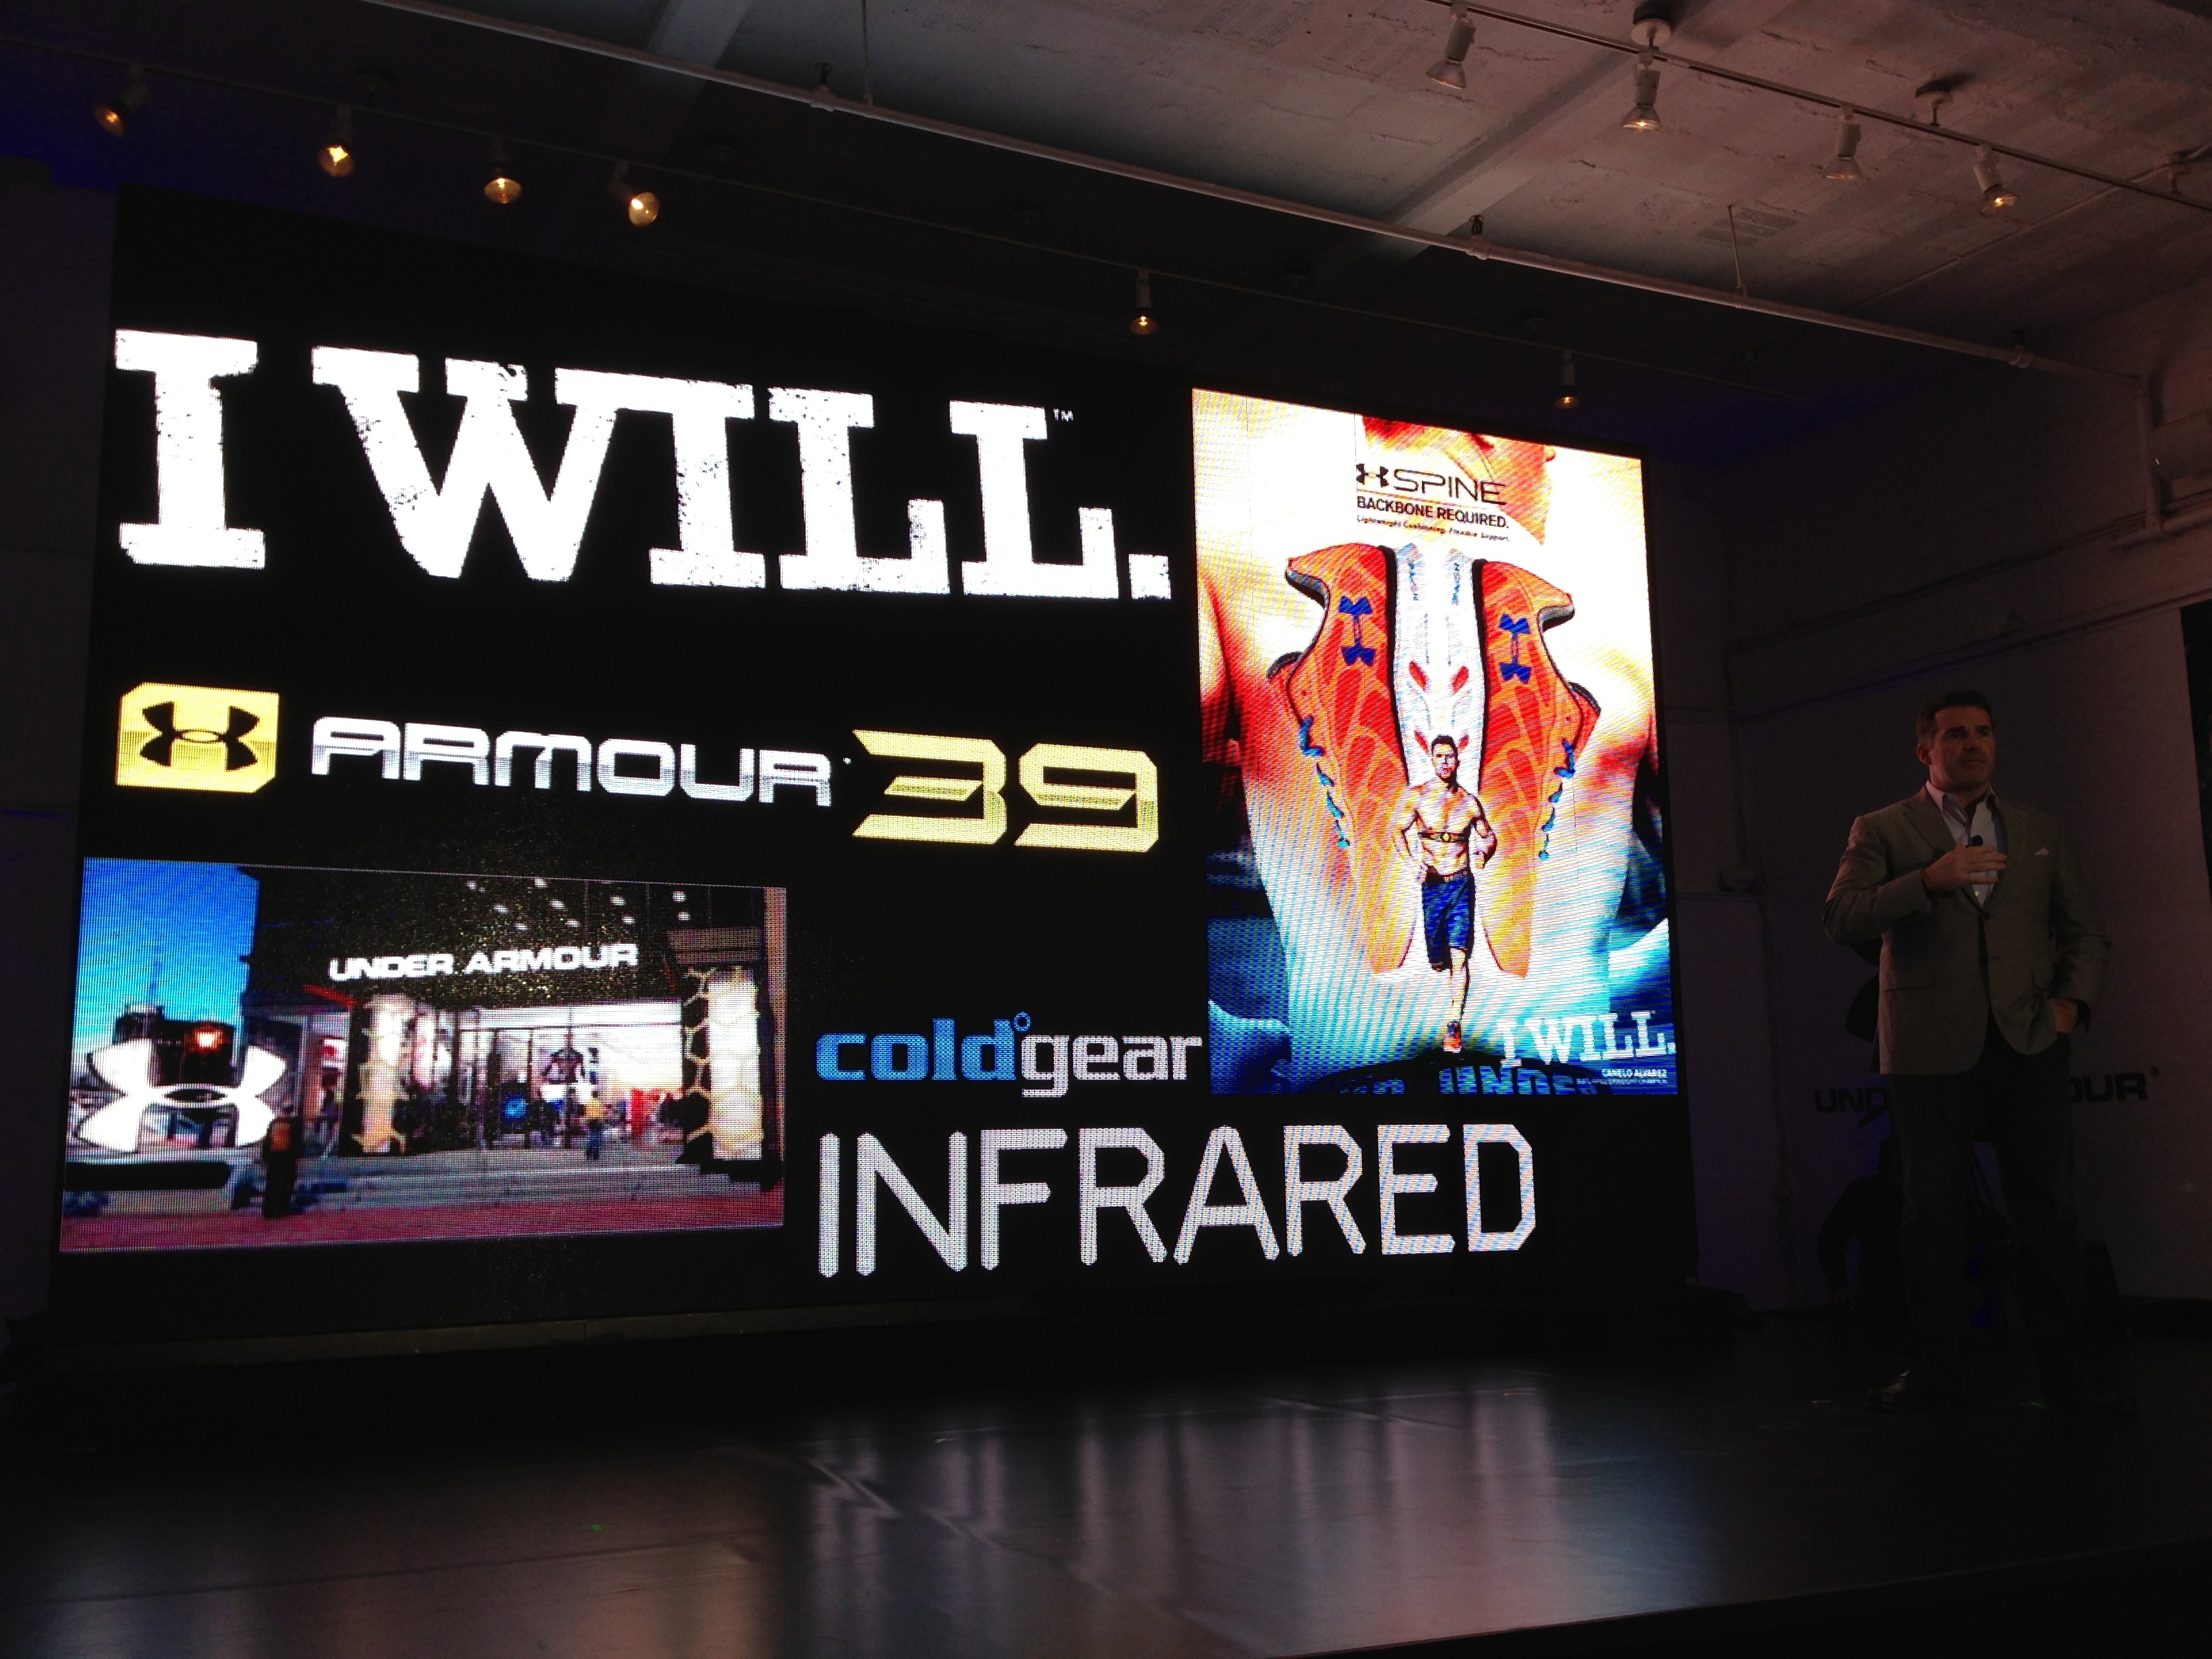 Under Armour's 'I Will' campaign